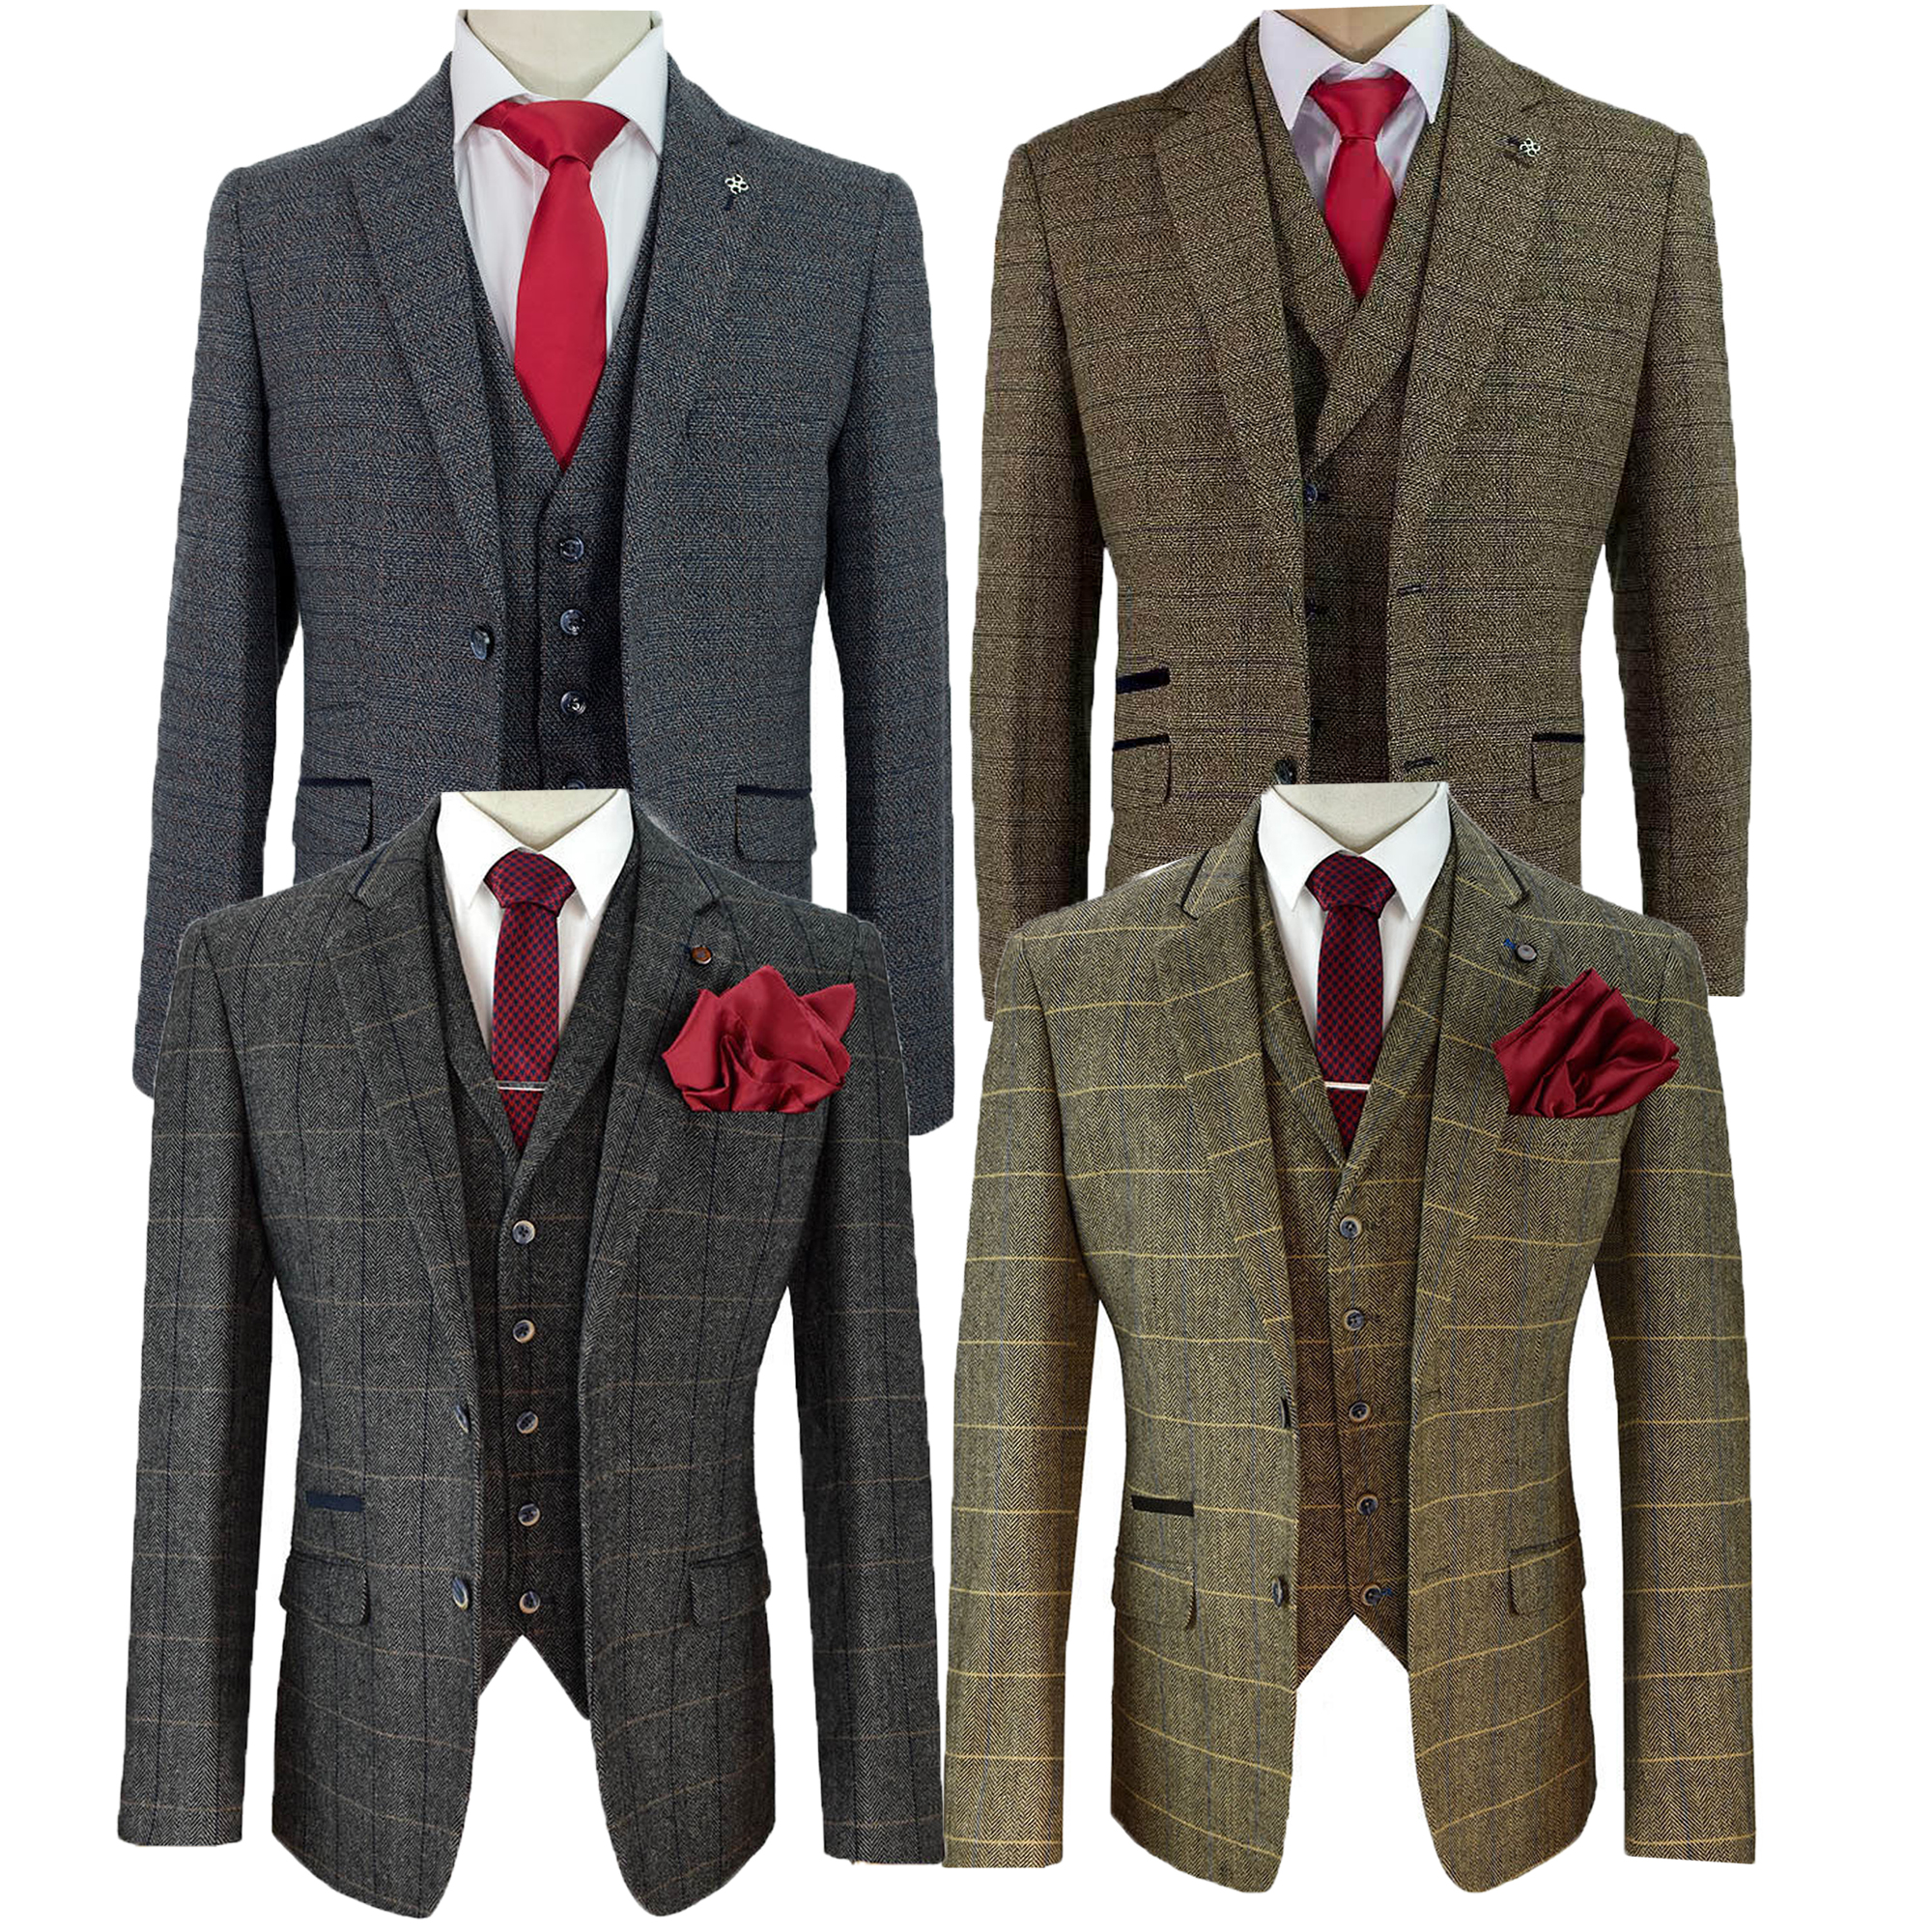 fd948d7b24 Mens Wool Mix Tweed Checked Blazers Waistcoats Trouser 3 Piece Suits ...